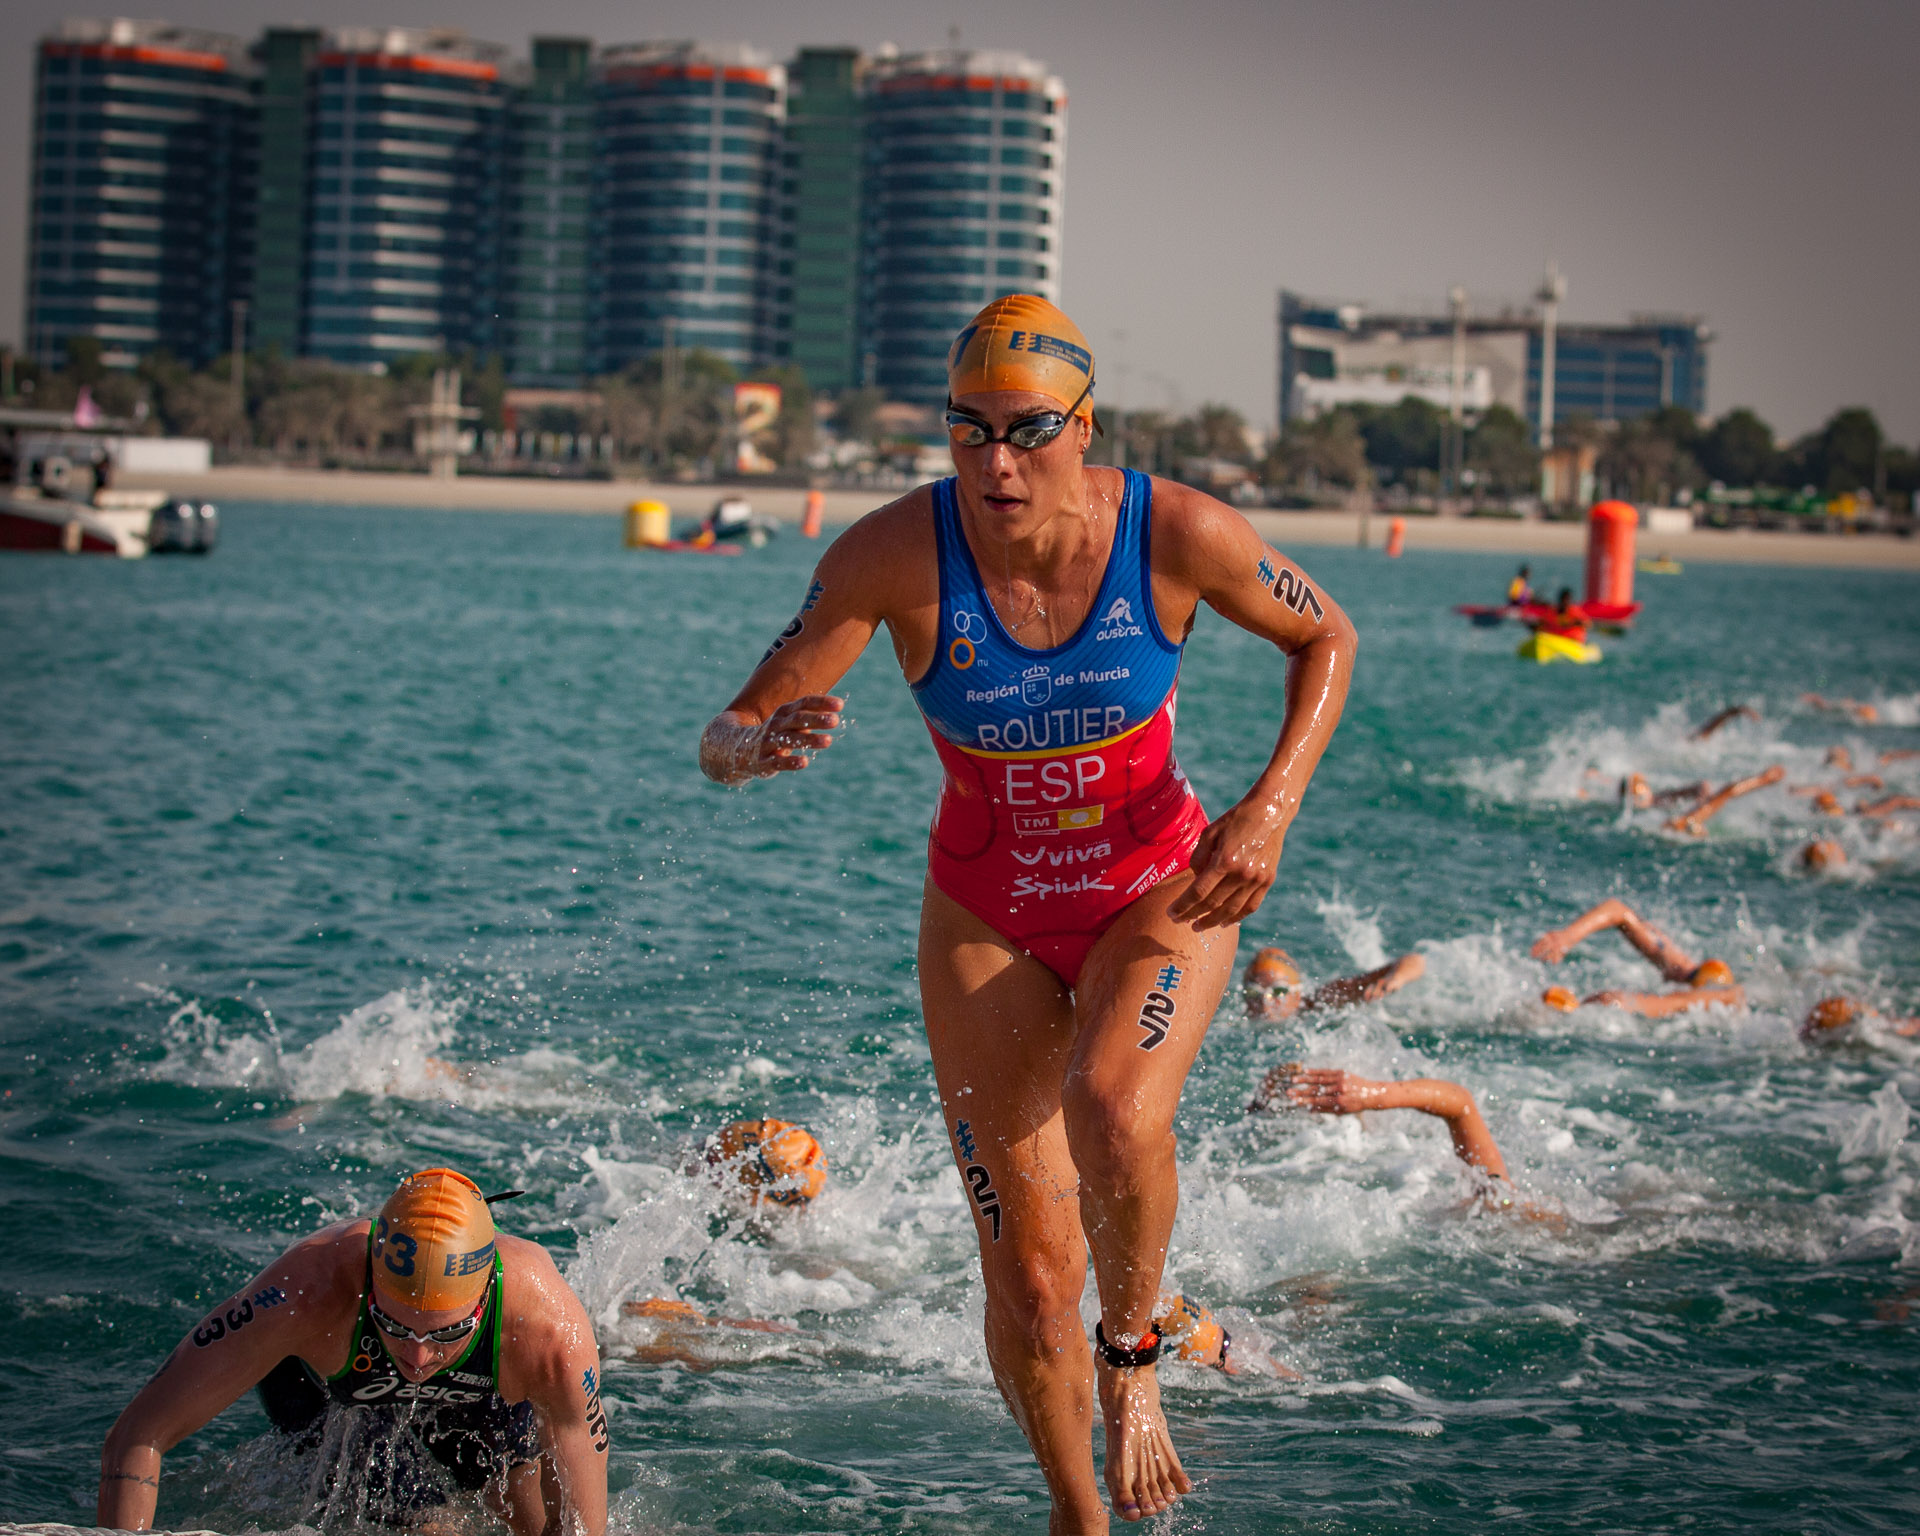 ABU DHABI, UAE (MARCH 5, 2016) -- Carolina Routier of Spain finishes the first lap of the swim at the season opening race for the 2016 ITU World Triathlon Series.